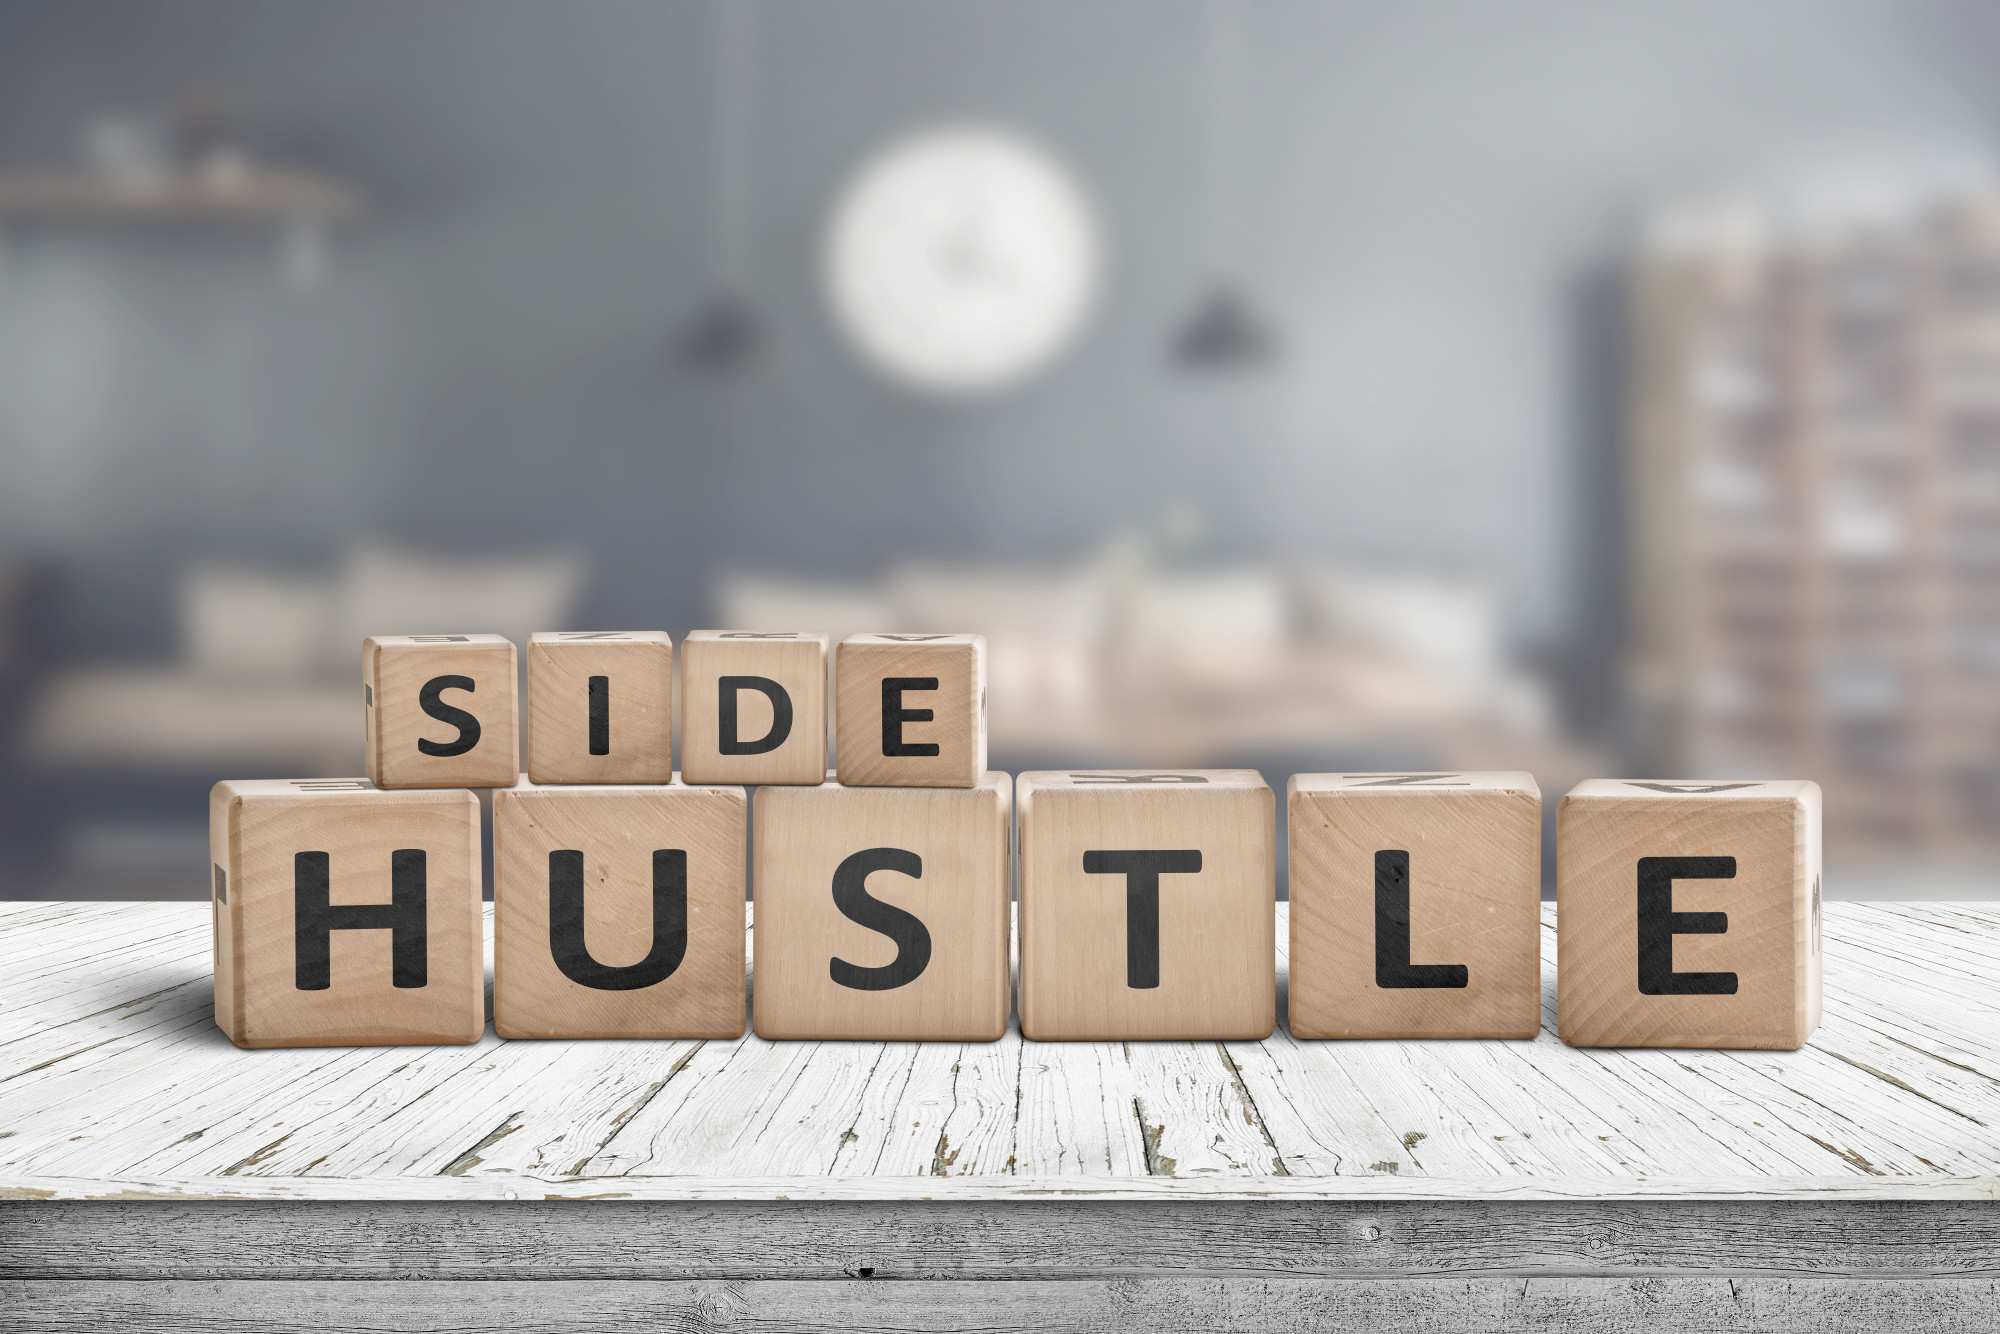 5 Ideas For Side Hustles You May Not Have Considered